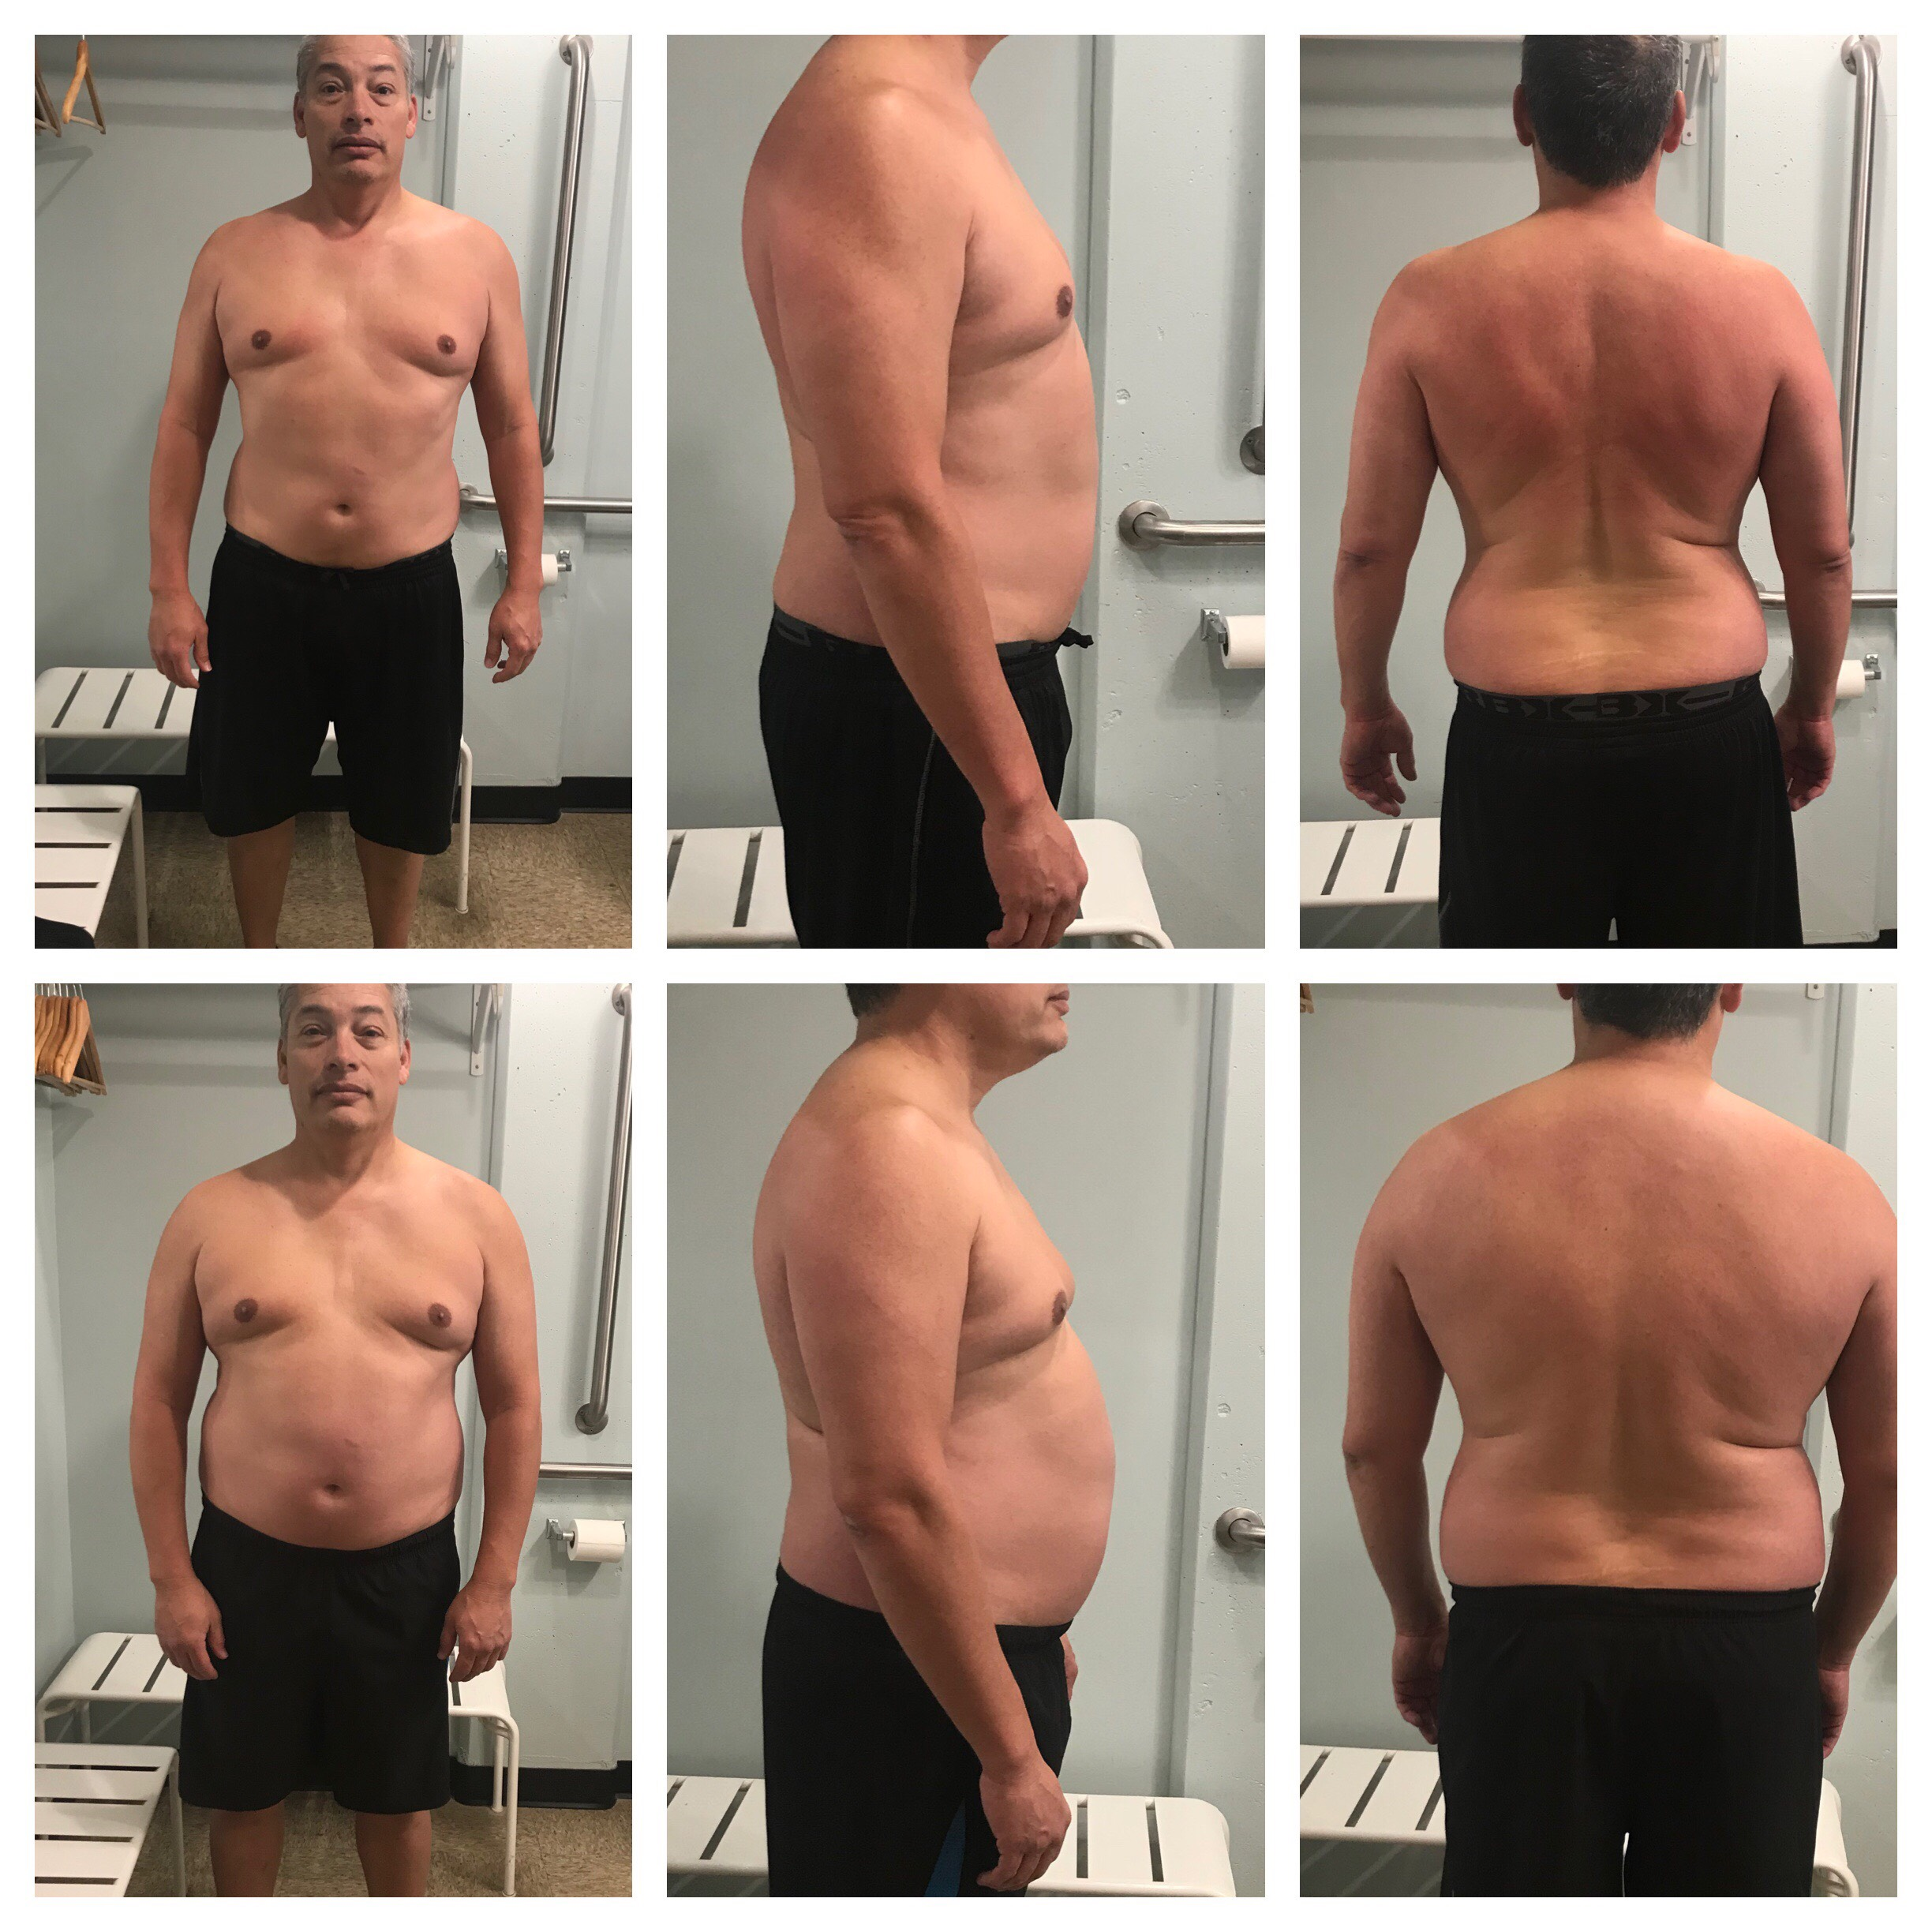 Gary lost 22 lbs in 3 months.